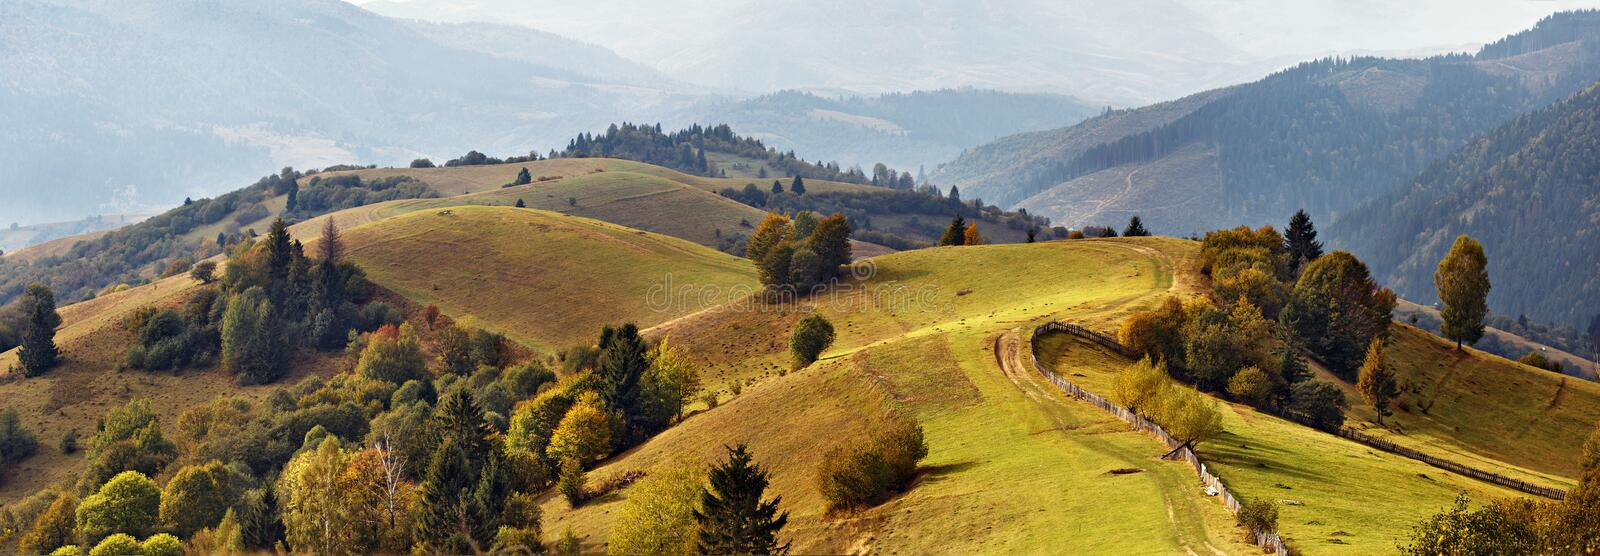 Autumn garden in mountains. Fall on the hills royalty free stock image